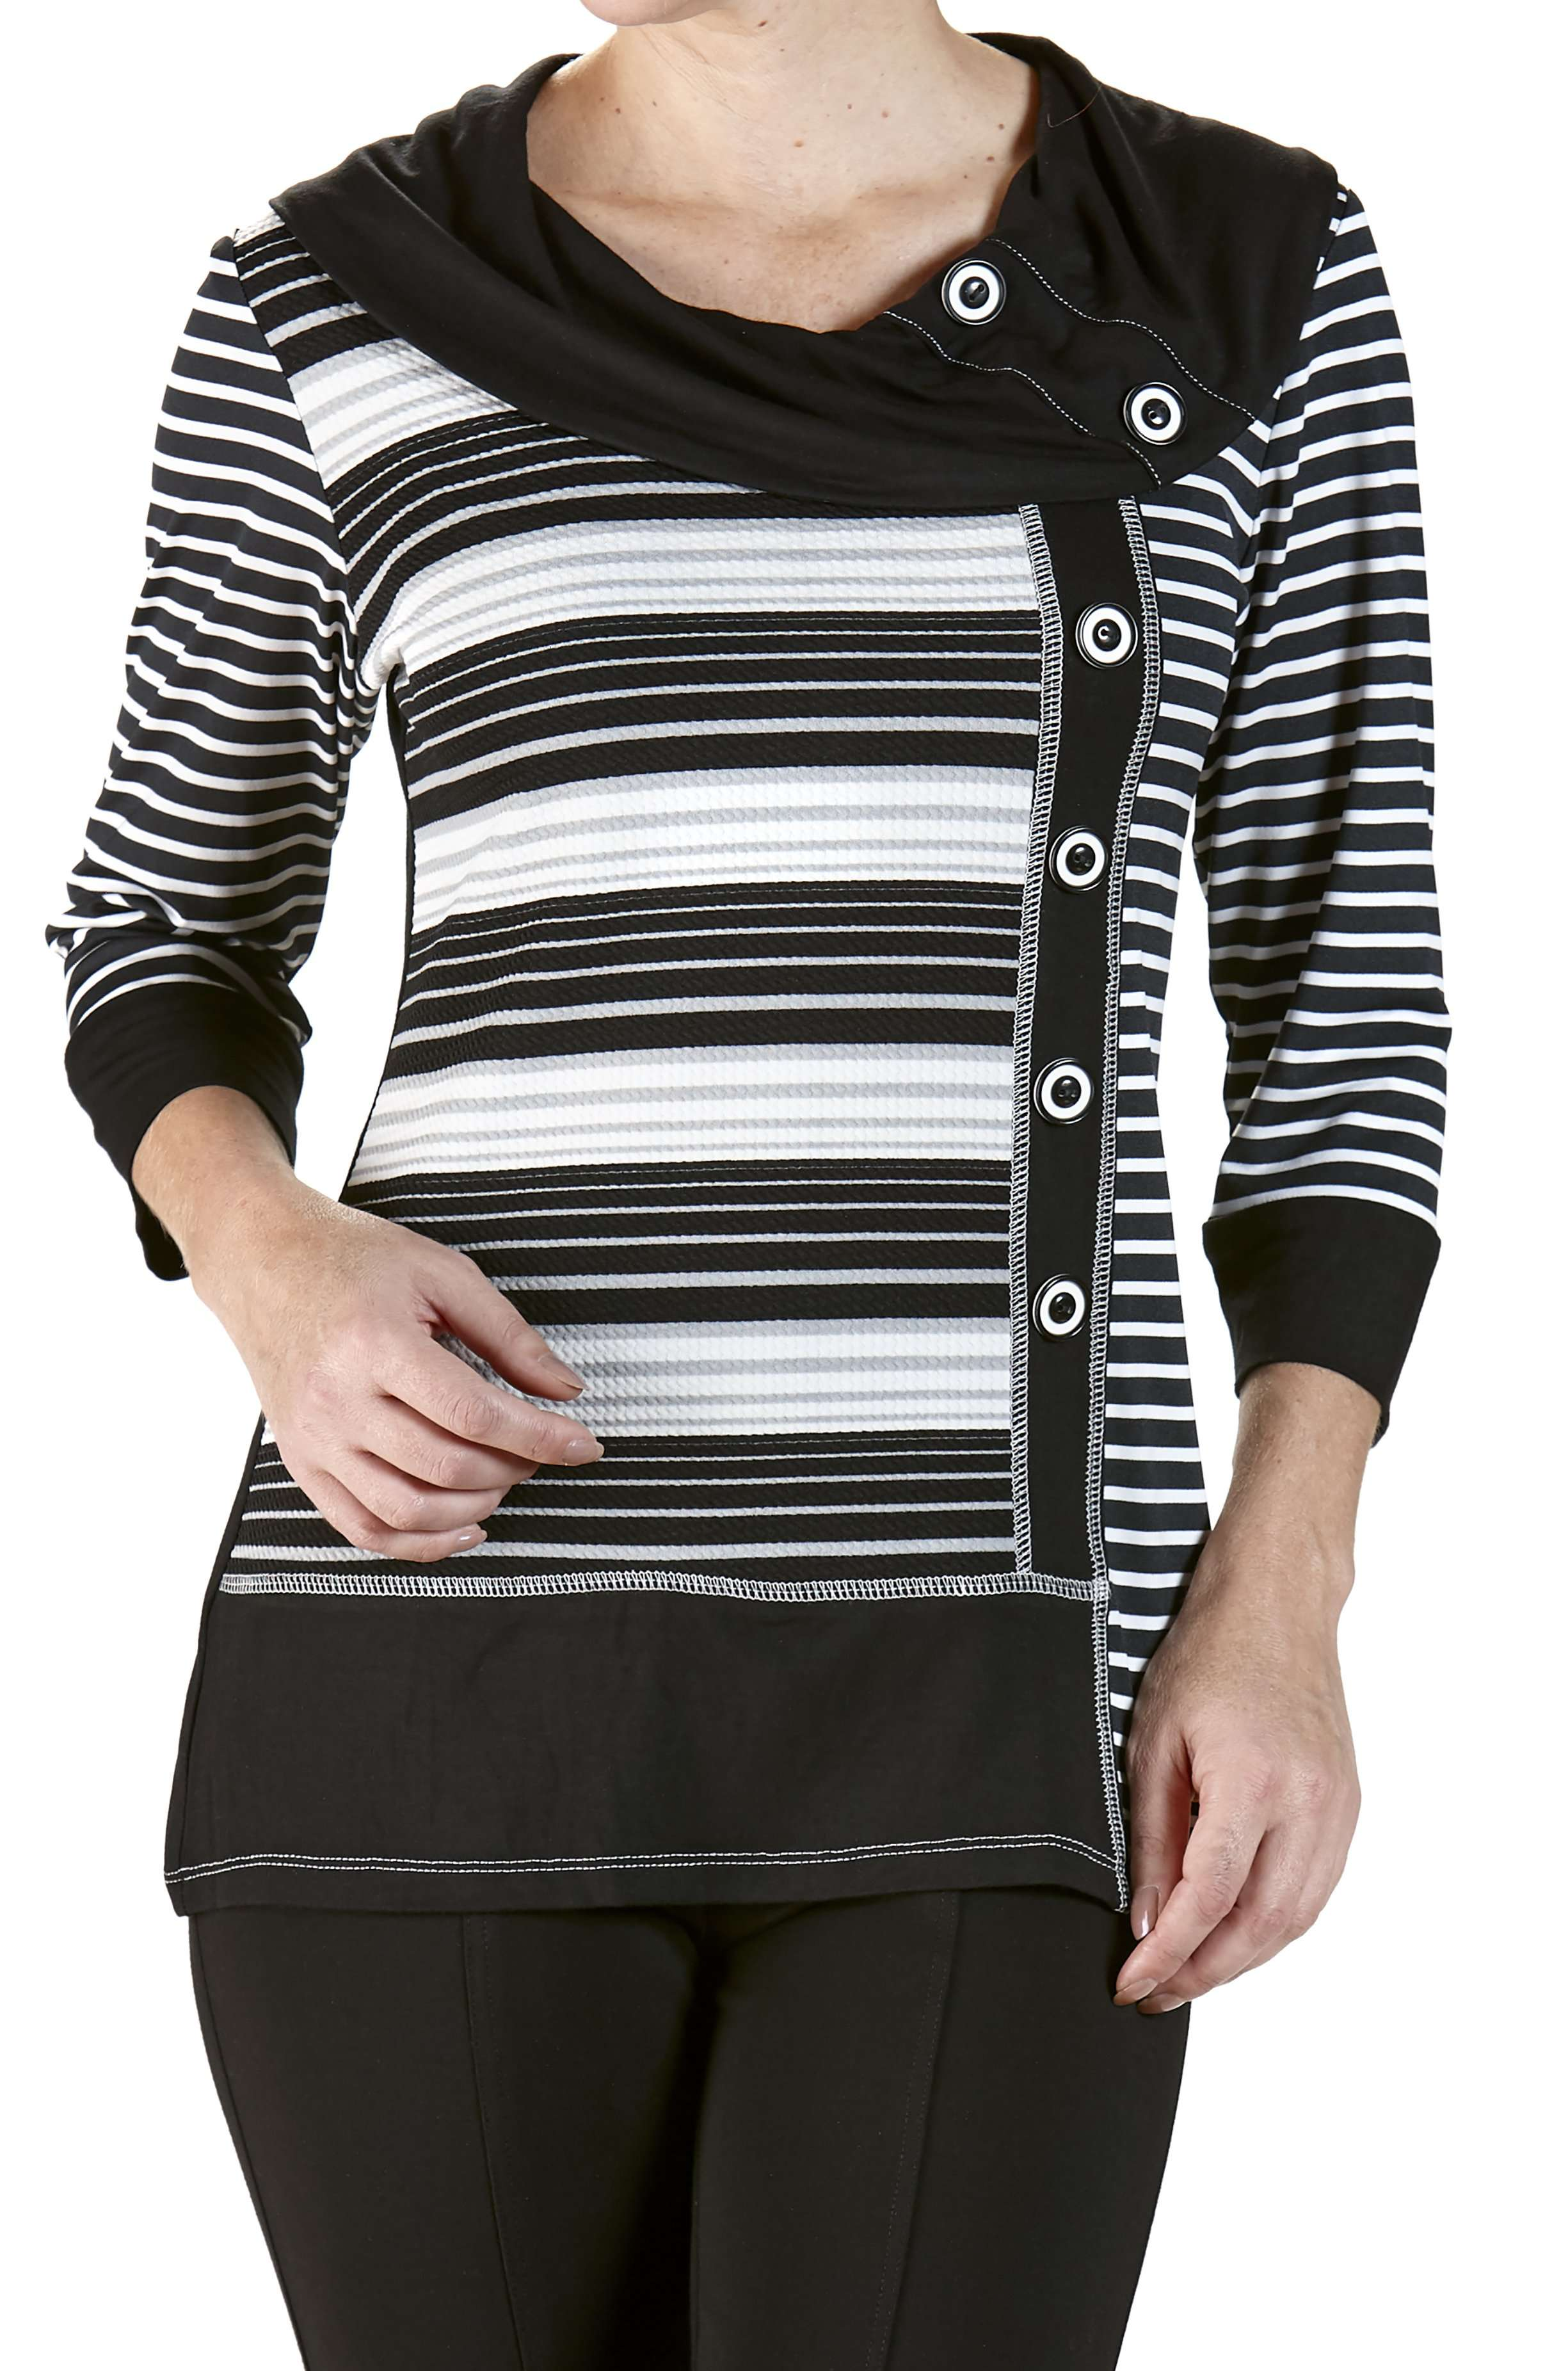 Sweater Knit Top Black and Grey Stripes - Yvonne Marie